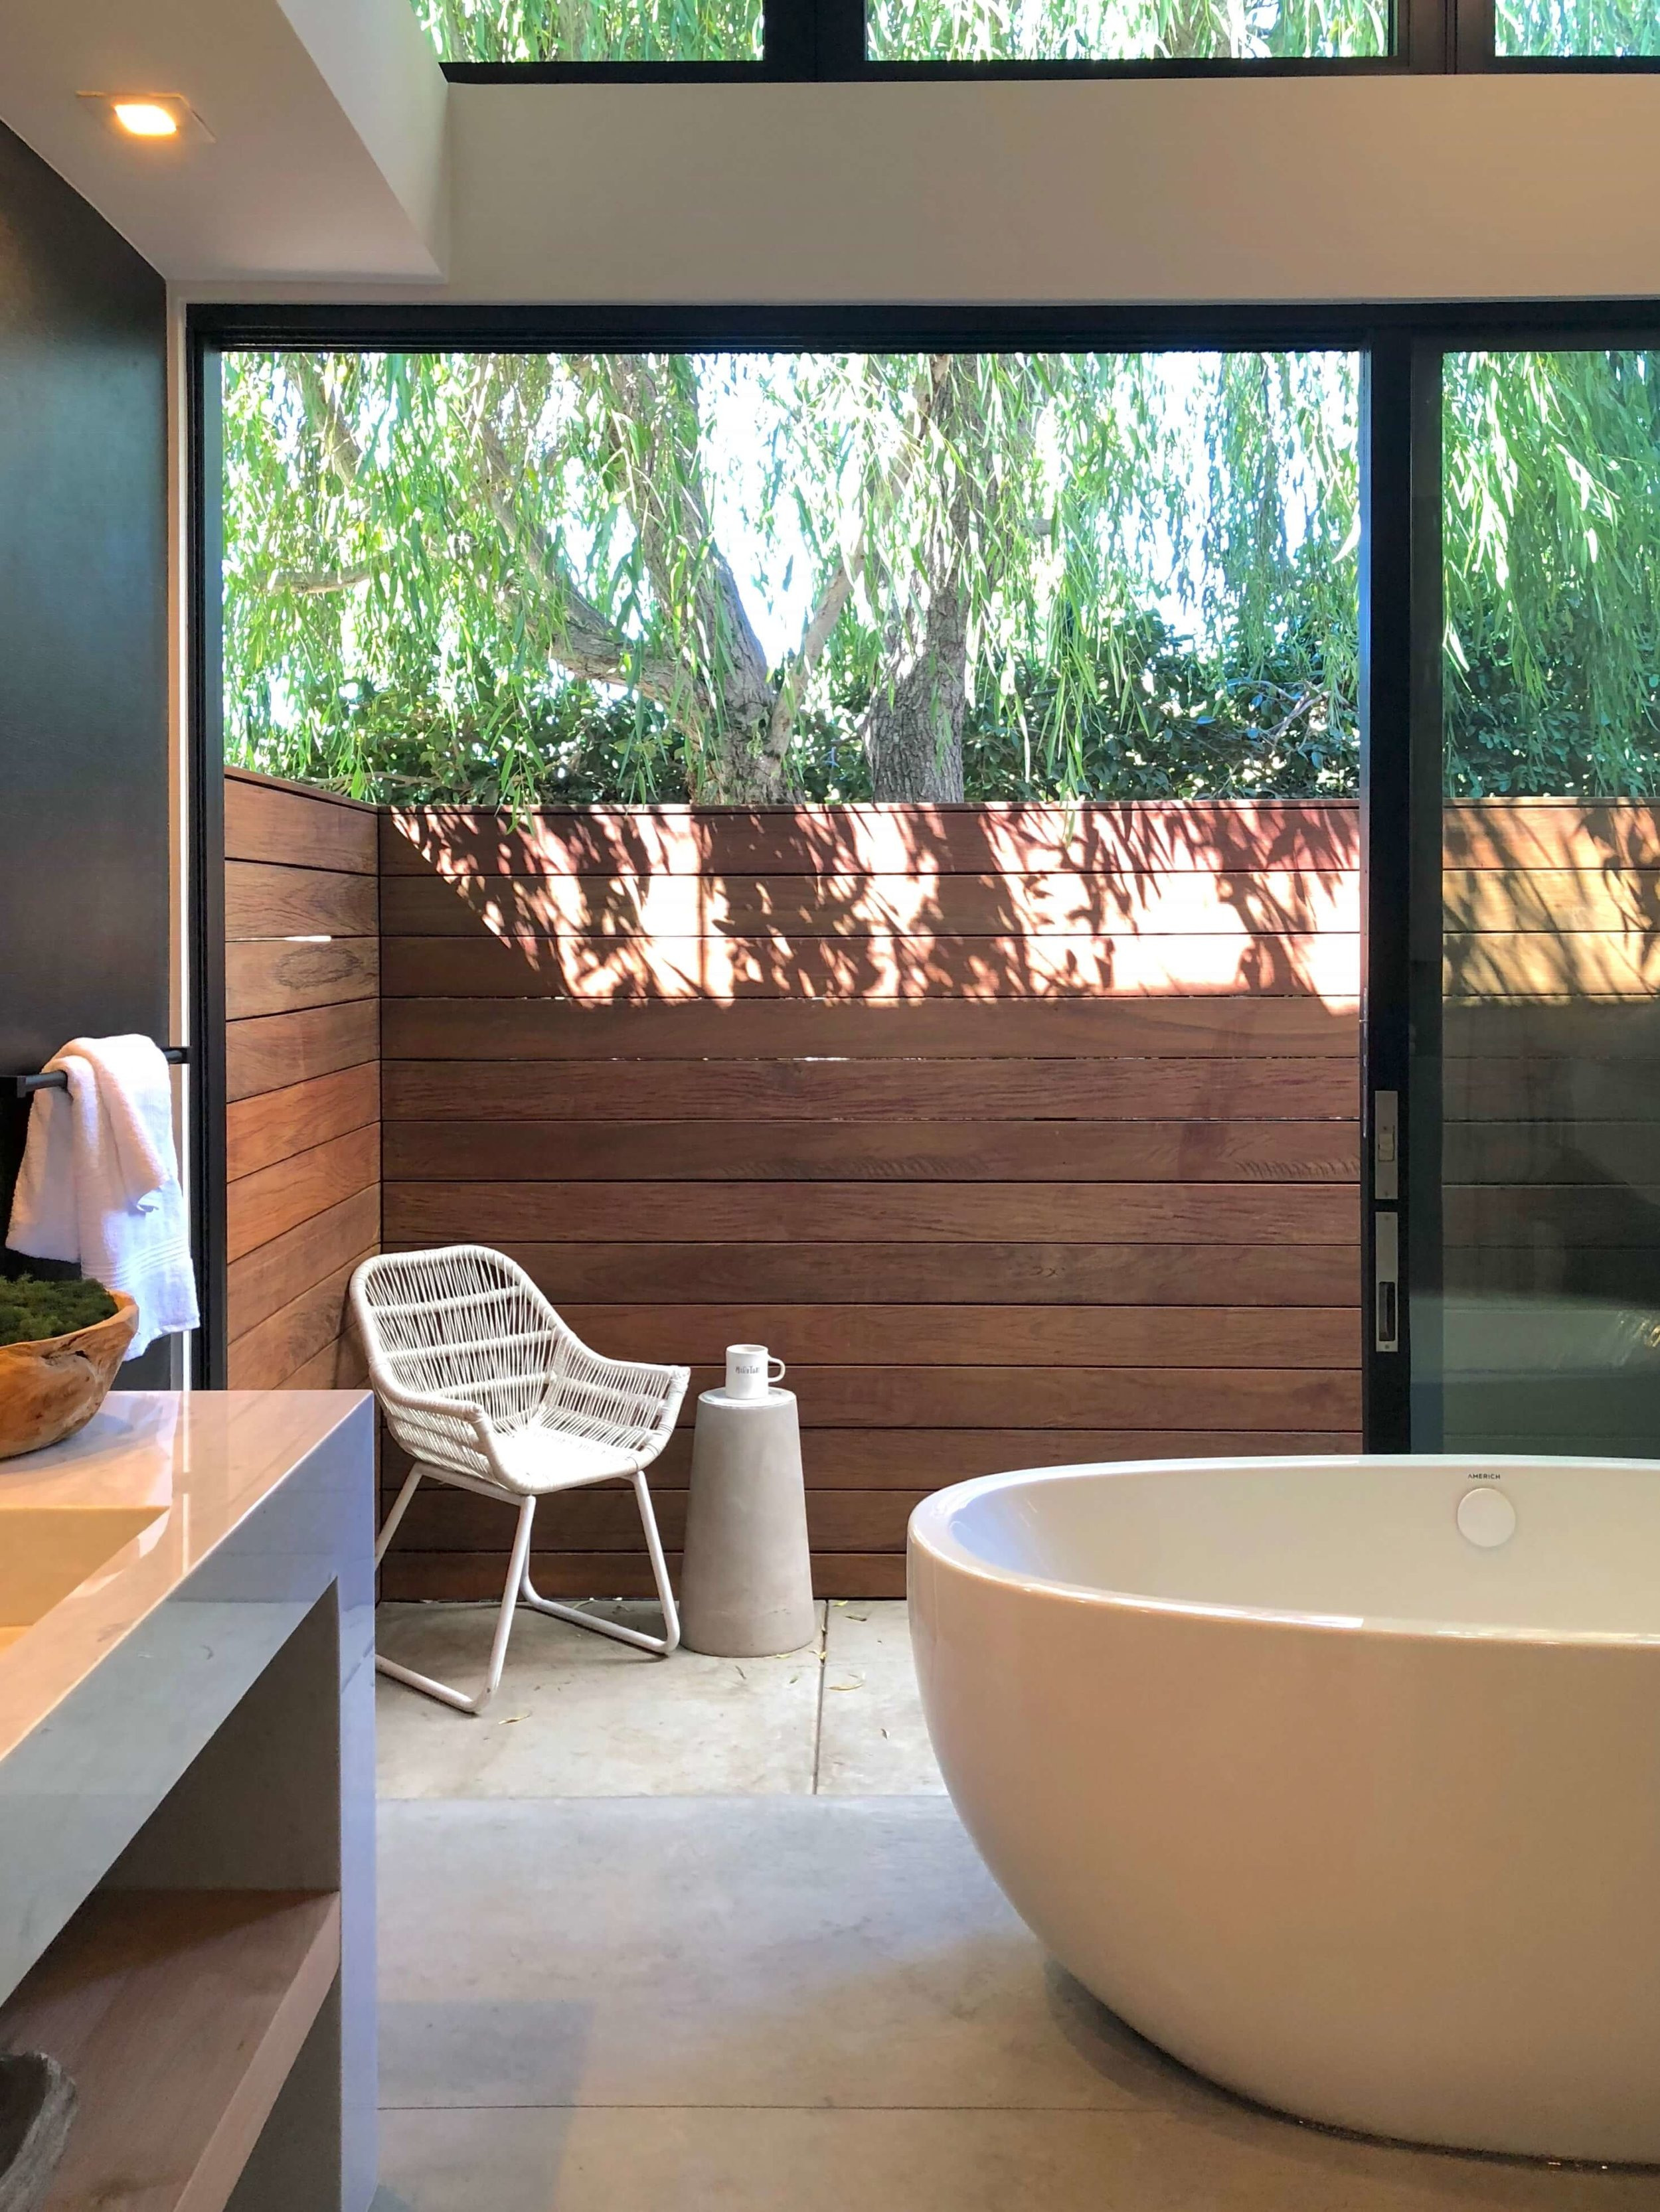 Master bathroom in California contemporary, Dwell on Design's Fall Home Tour, Designer: Vitus Matare #bathroomdesign #freestandingtub #bathroomideas